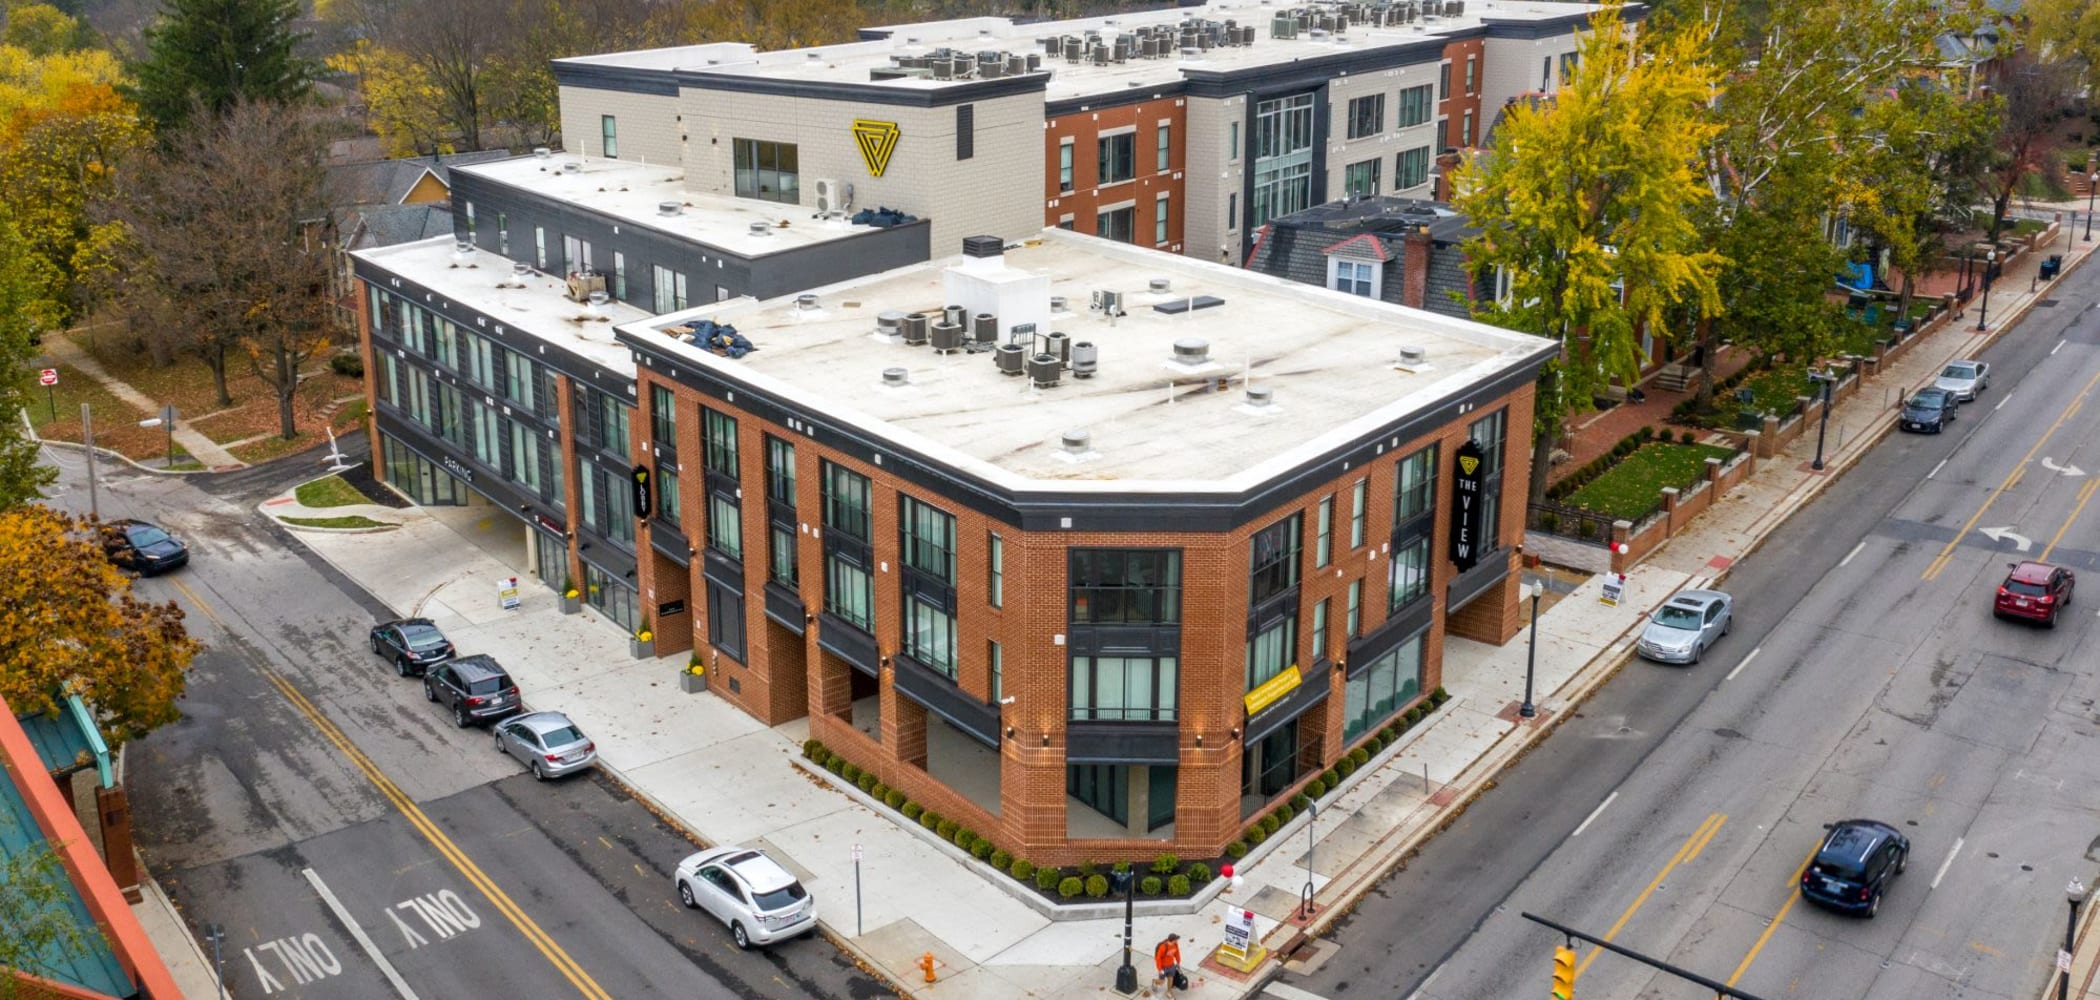 View from the sky of the exterior building at The View on Pavey Square in Columbus, Ohio